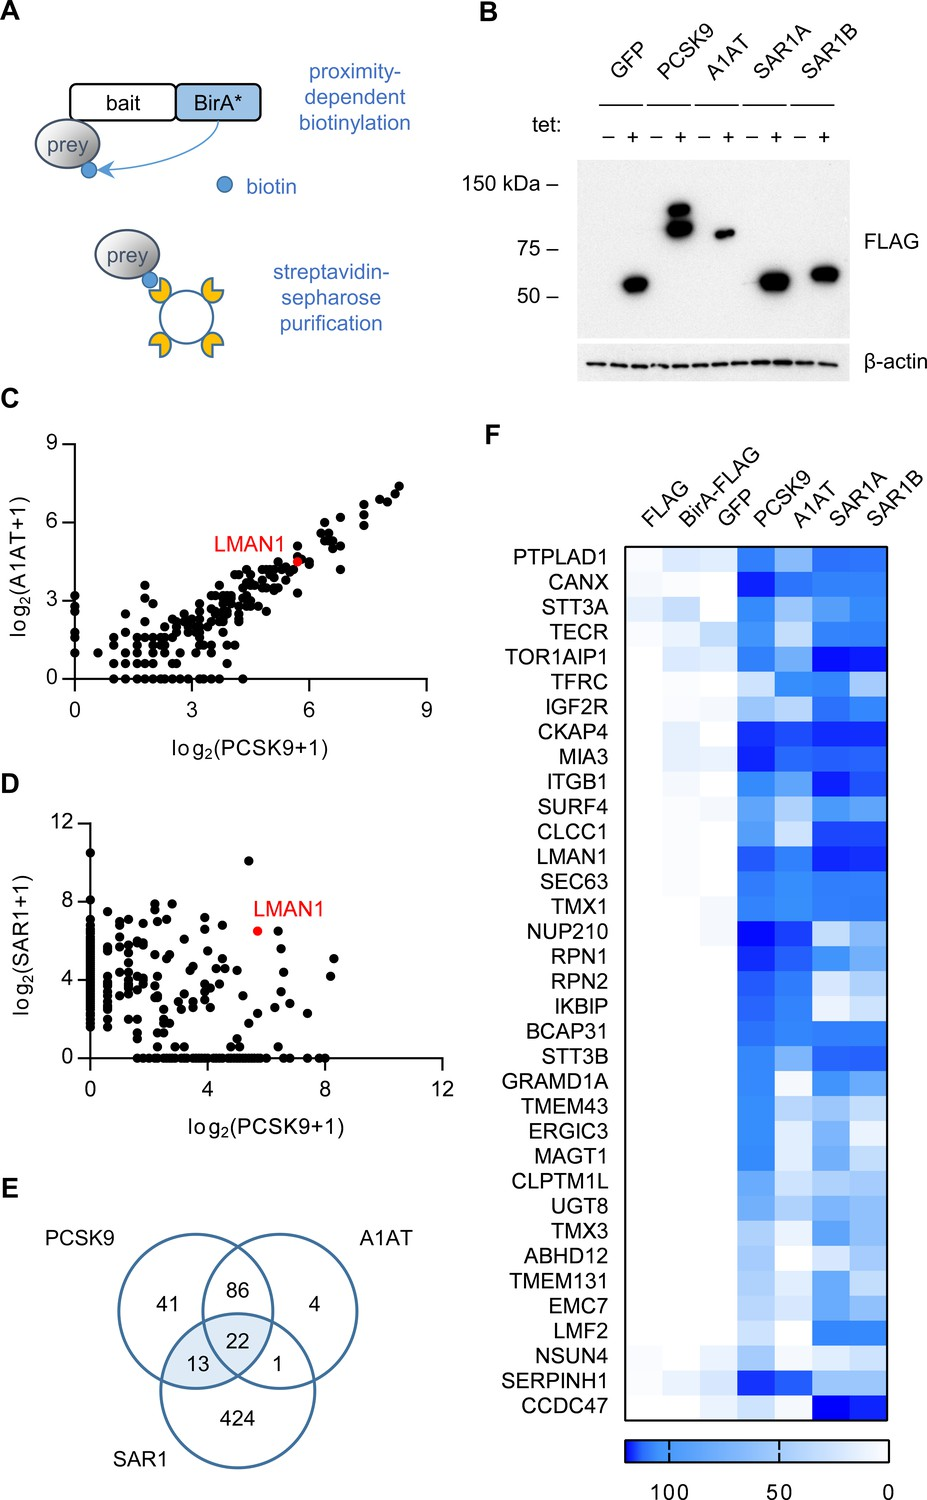 The Cargo Receptor Surf4 Promotes Efficient Cellular Secretion Moonshine Diagram Related Keywords Suggestions Proximity Dependent Biotinylation With A Pcsk9 Bira Fusion